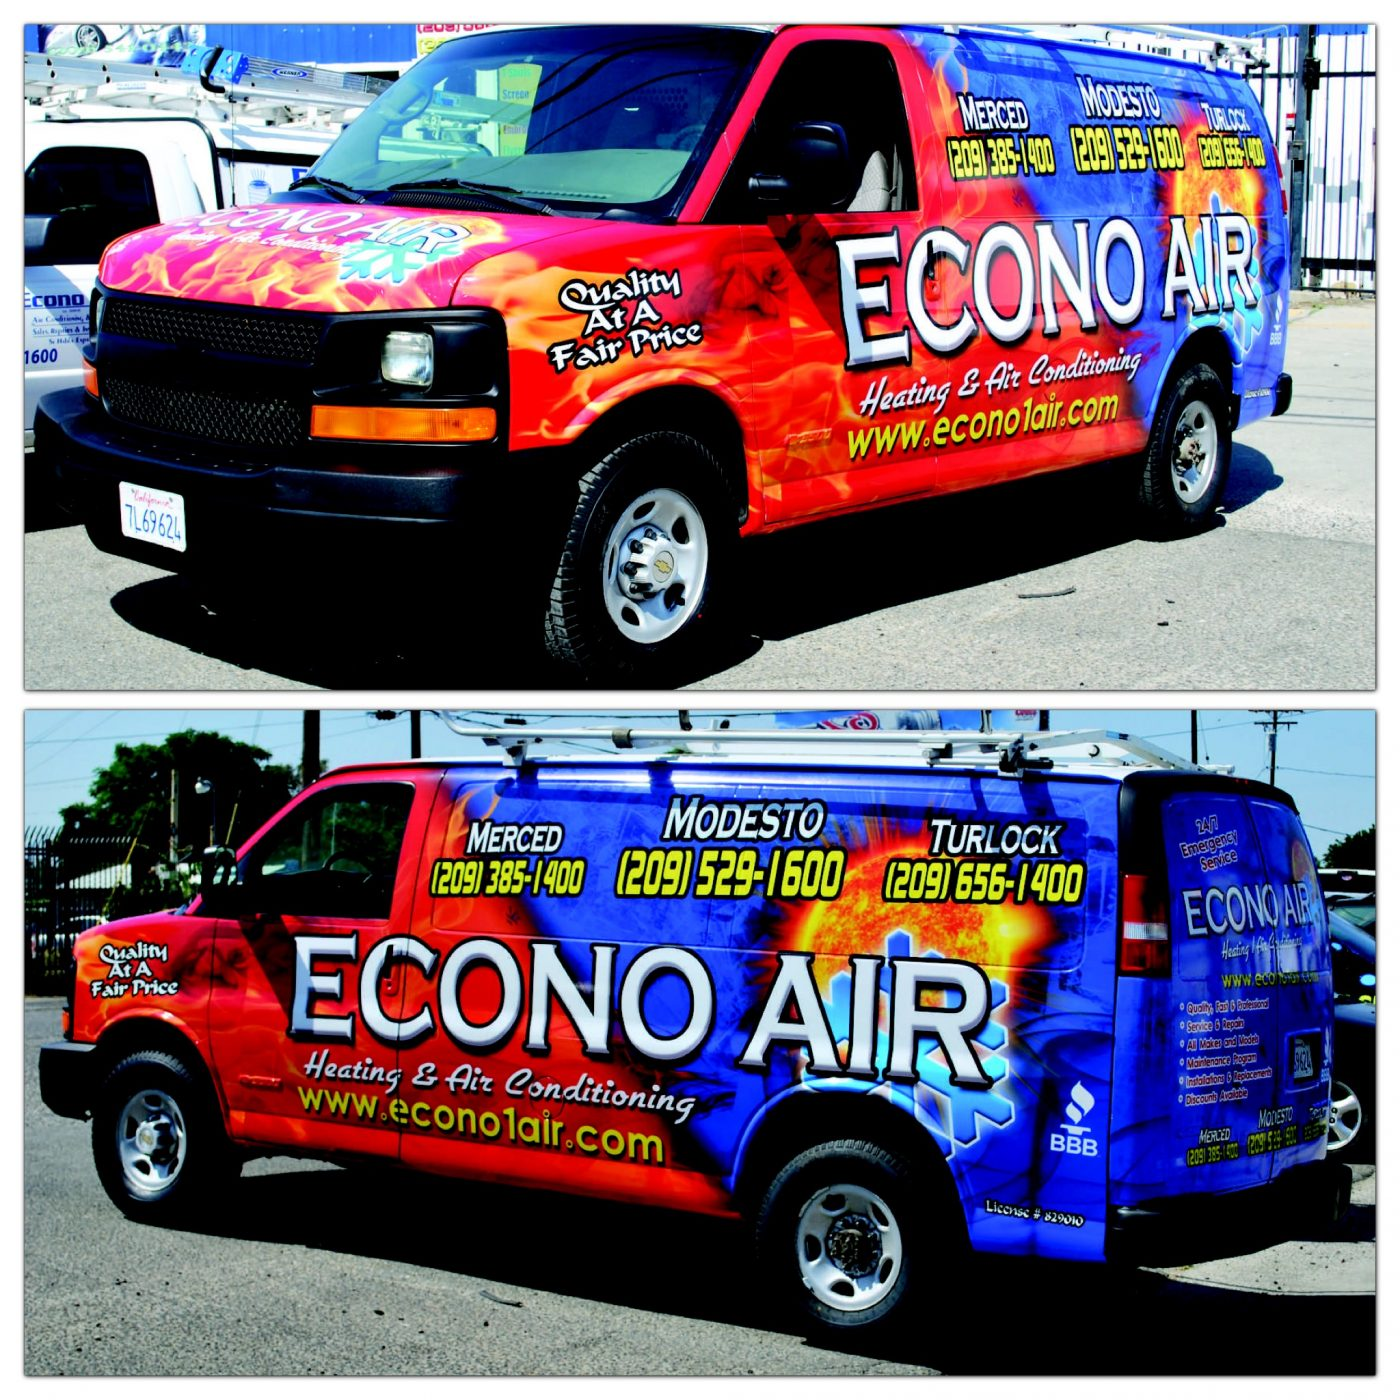 Full Van Commercial Vehicle Wrap